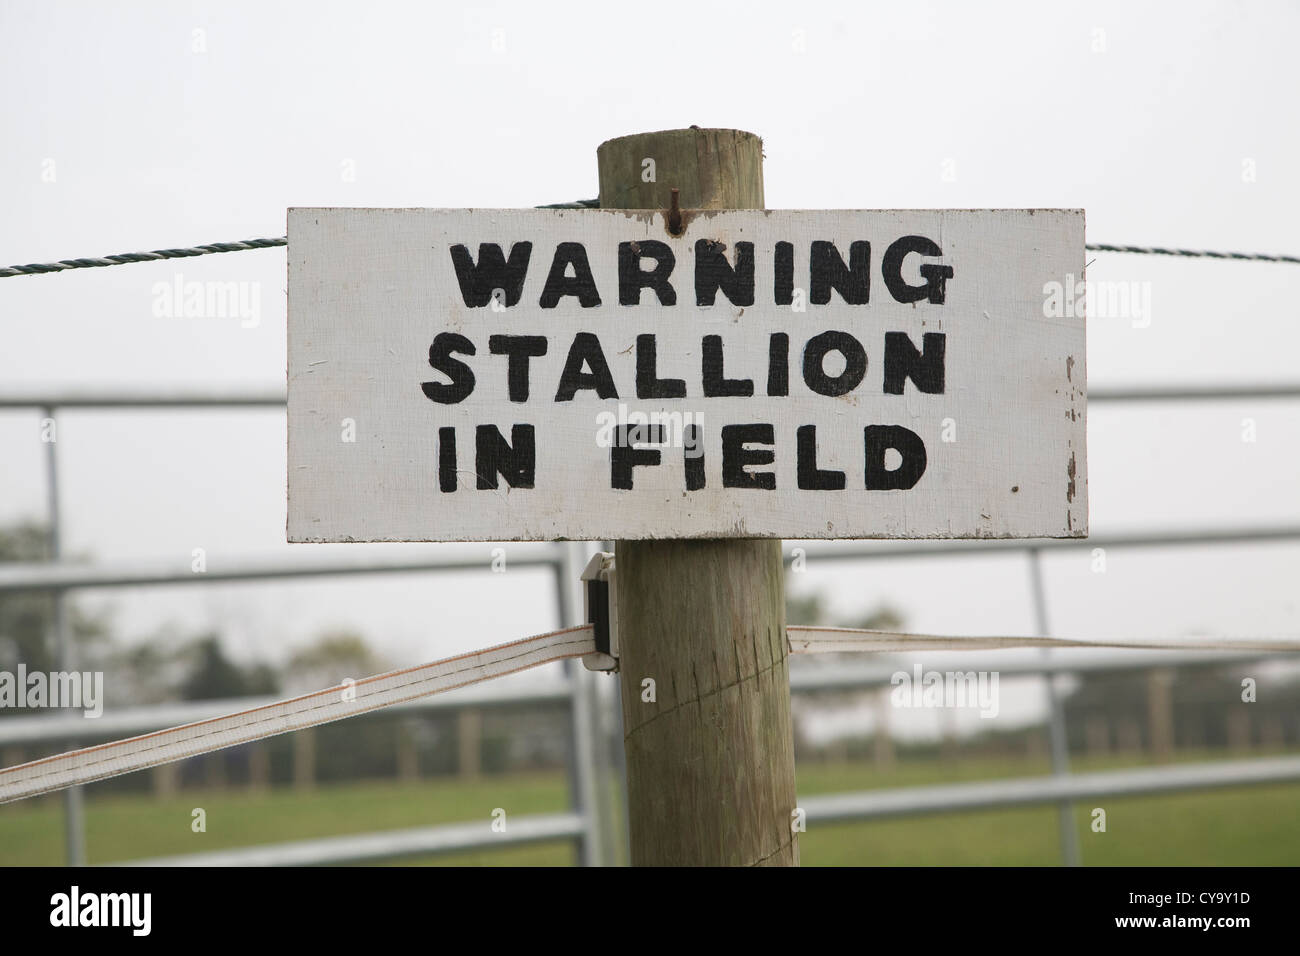 Sign warning stallion in field on wooden post - Stock Image